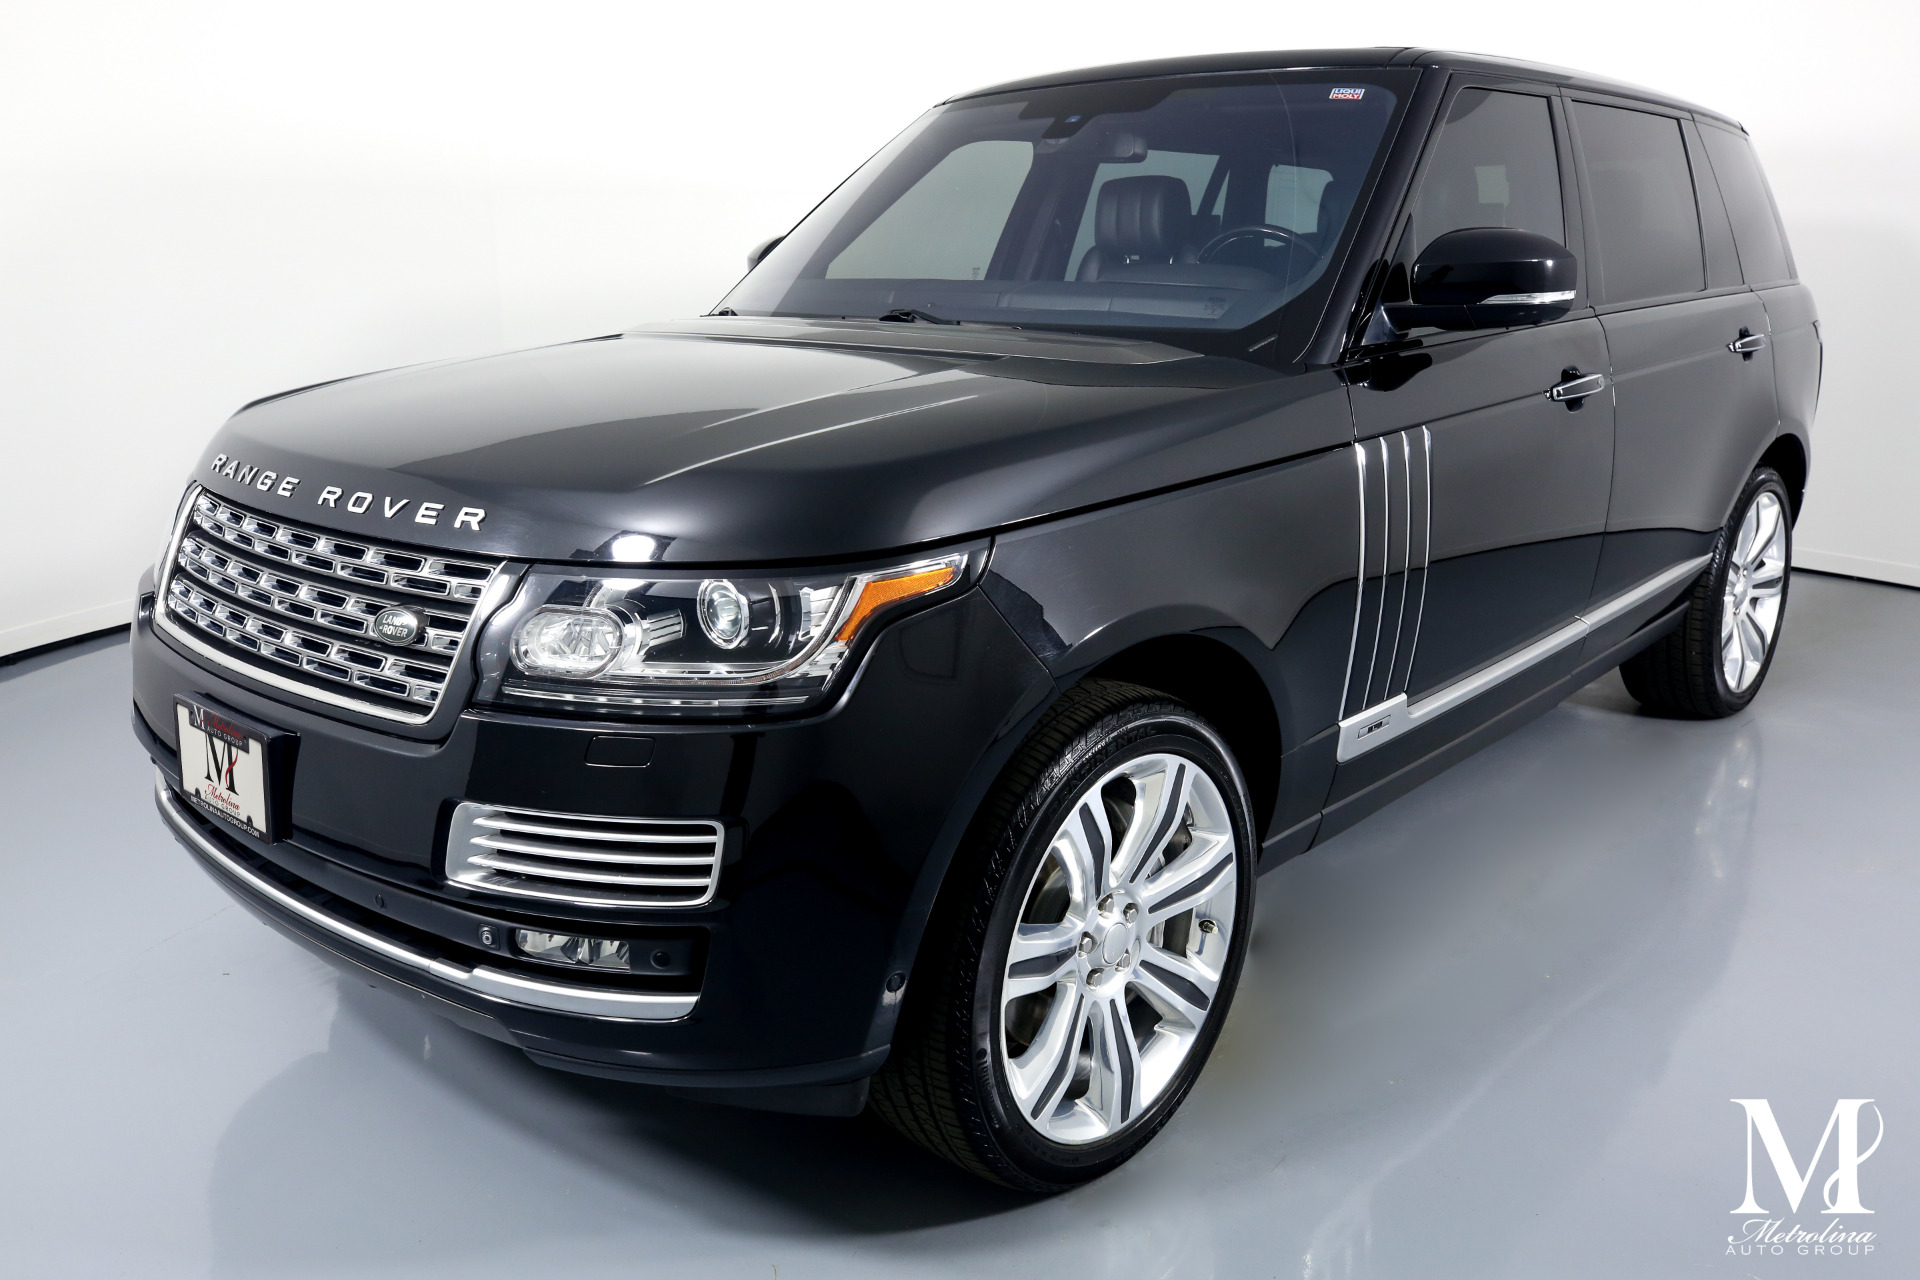 Used 2015 Land Rover Range Rover Autobiography Black LWB for sale $74,996 at Metrolina Auto Group in Charlotte NC 28217 - 4